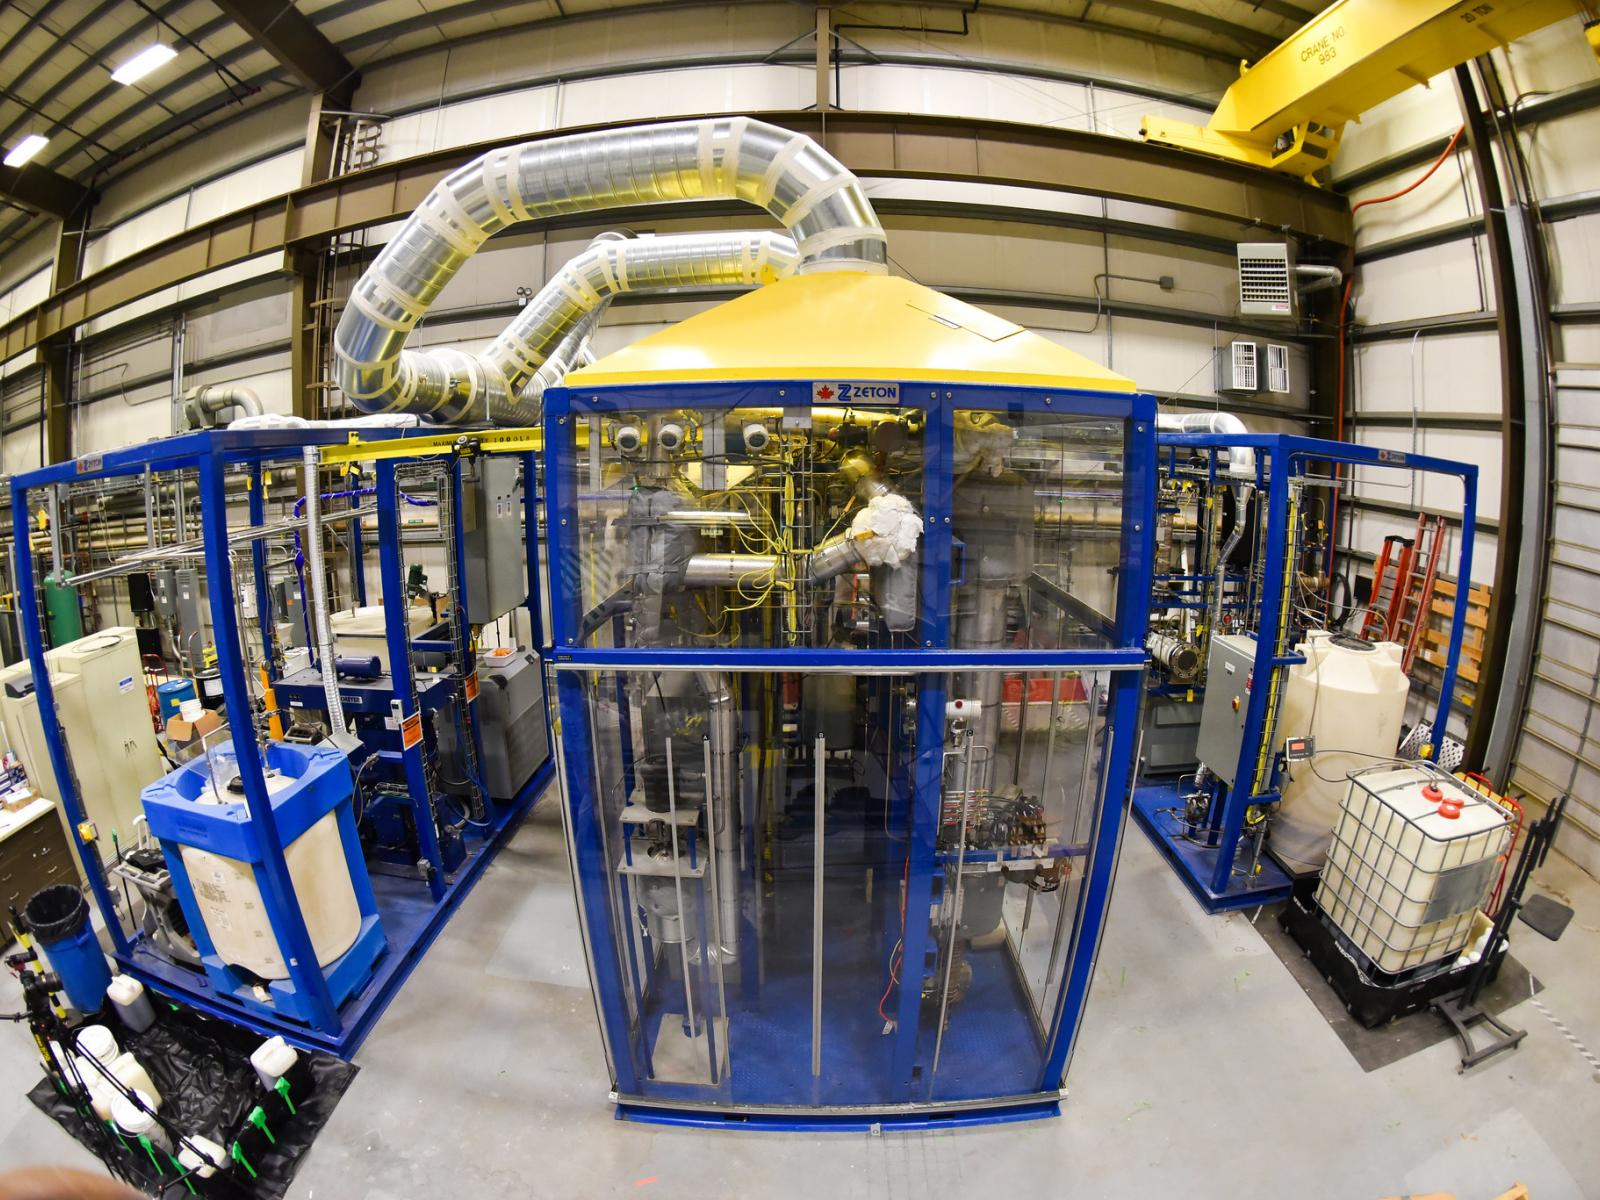 Photo of the Modular Hydrothermal Liquefaction System at PNNL